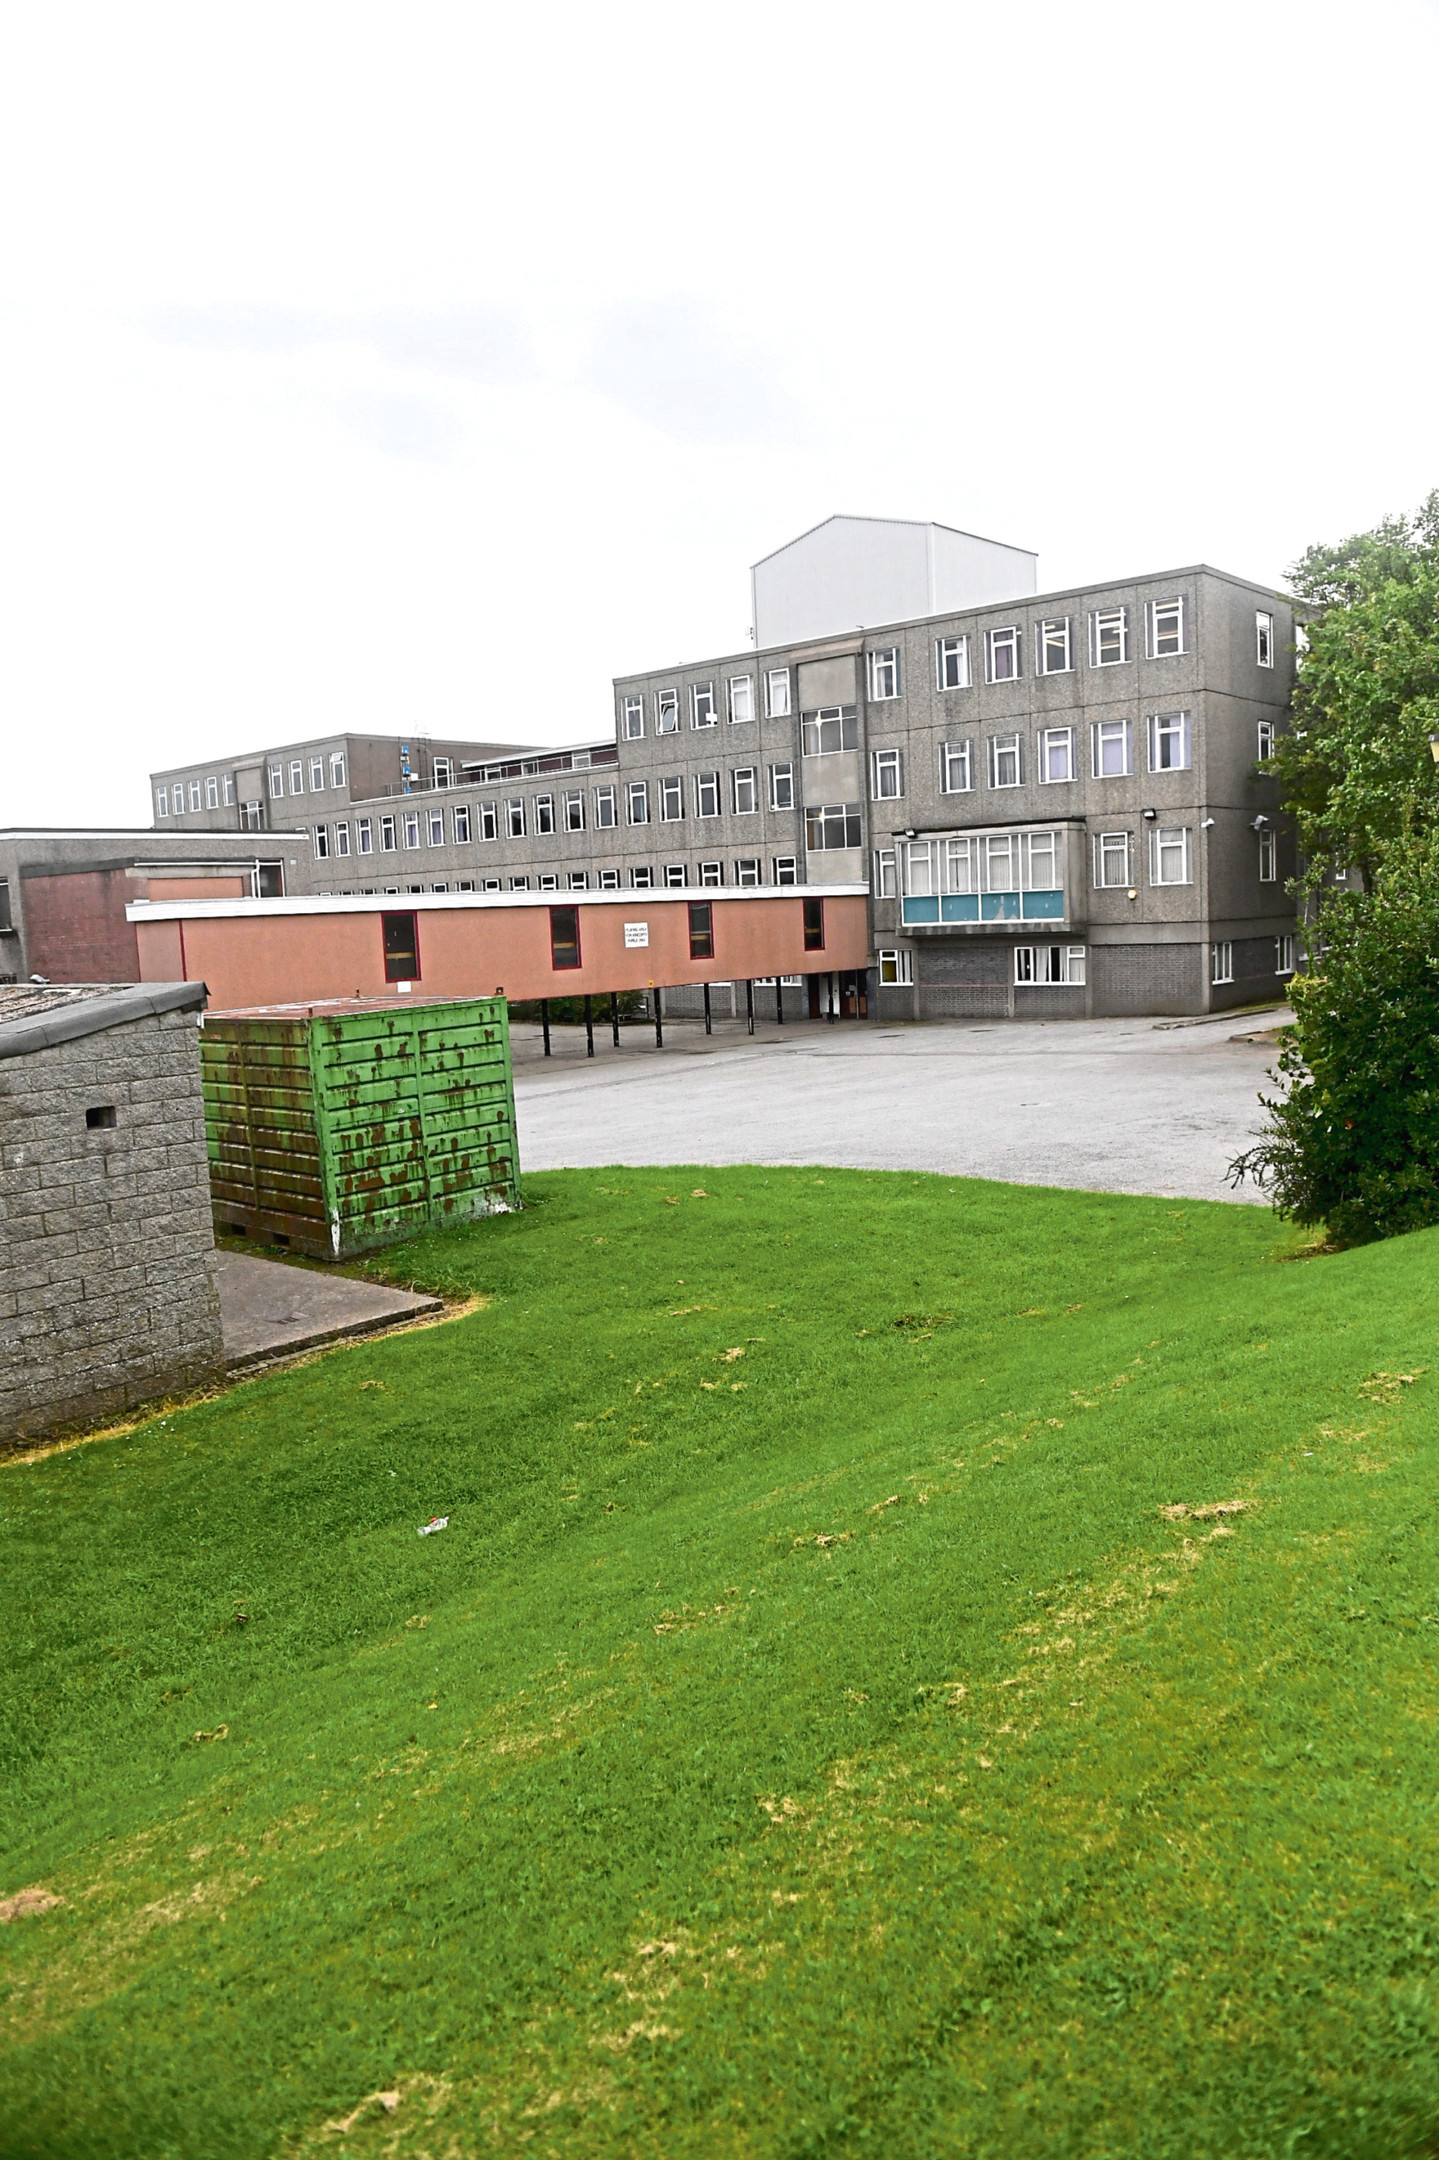 Kincorth Academy has been vandalised and security will be stepped up